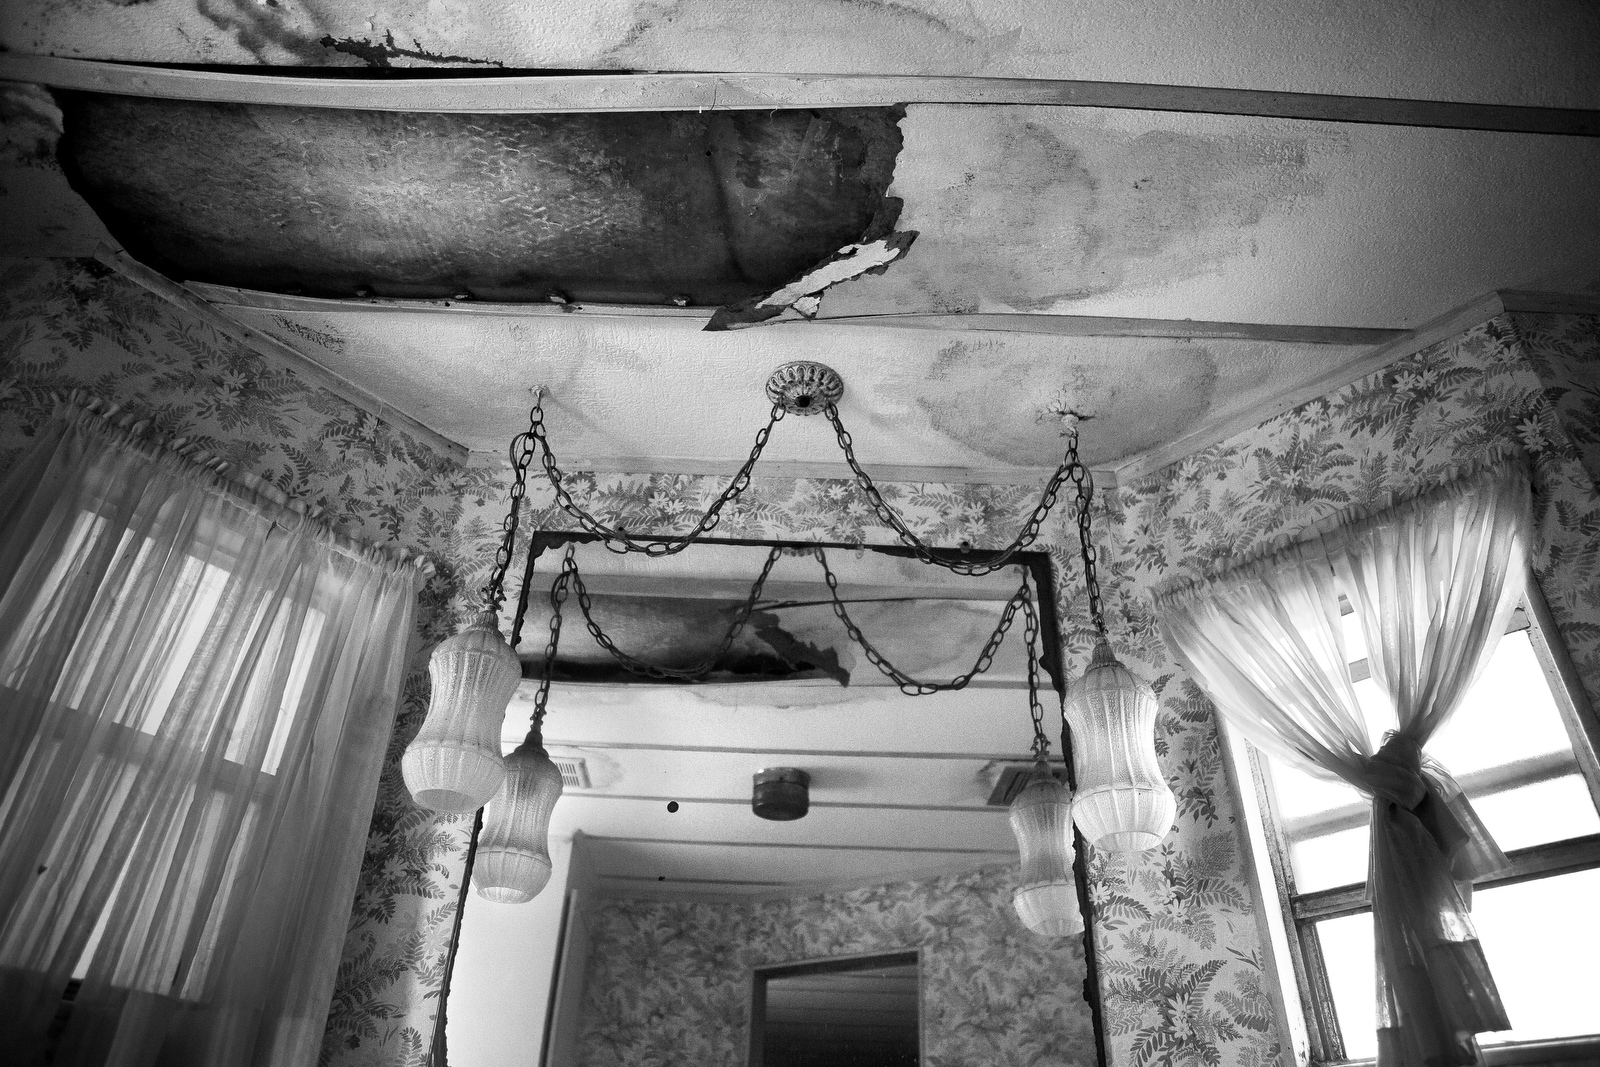 Holes in the ceiling mirror those in the floor of Charles Asaro's home in Hobe Sound. At 98-years-old Charles has been living in th3e house for nearly 40 years despite it being in desperate need of repairs.